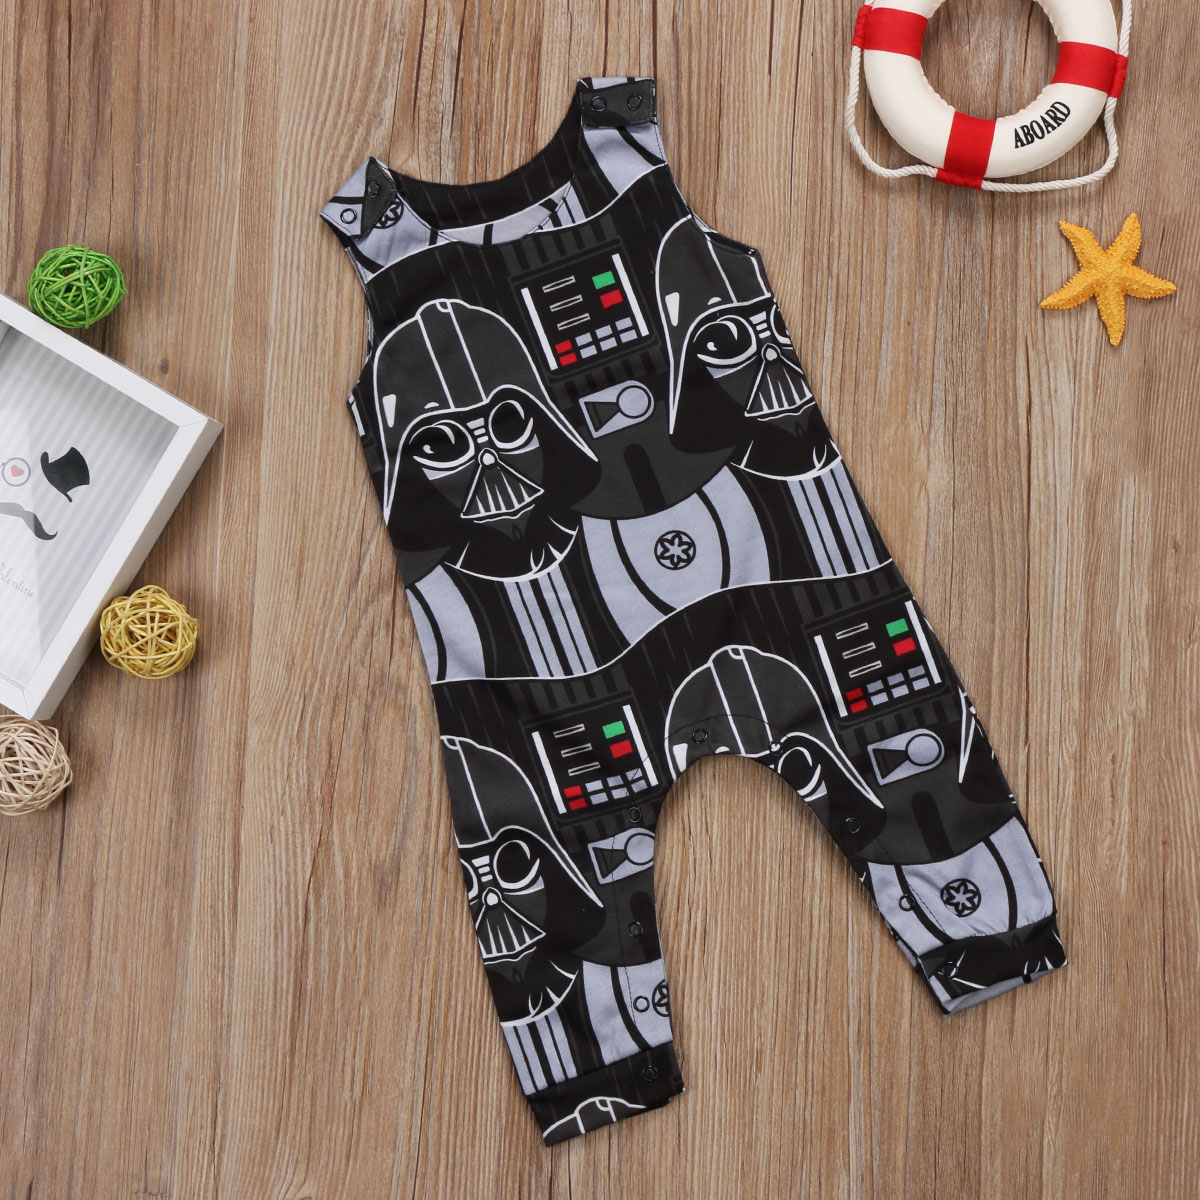 7e008232c379 Aliexpress.com : Buy Fashion Trendy Stylish Kids Baby Boys Casual Romper  Playsuit Jumpsuit Clothes Outfit 0 3Y from Reliable outfit fashion  suppliers on Two ...